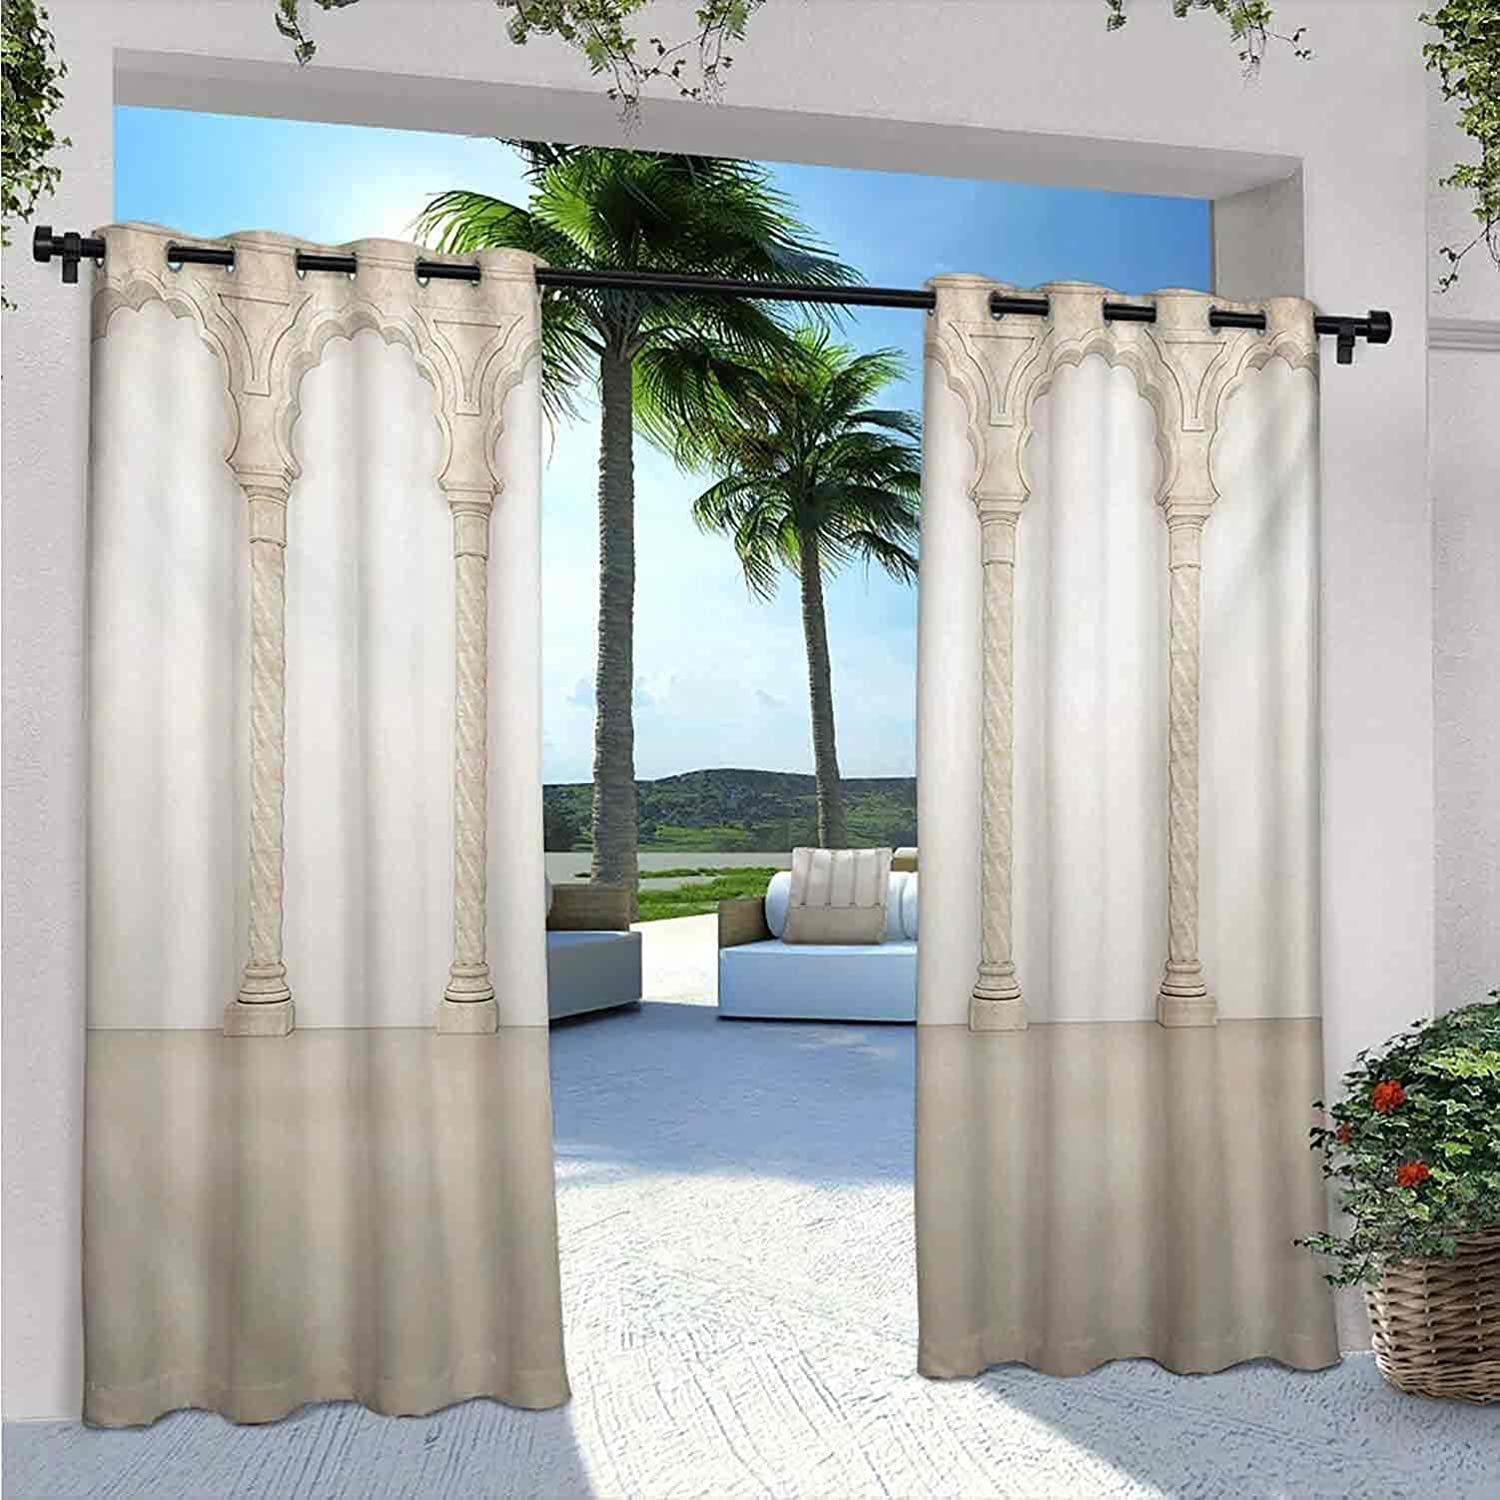 Pillar 2021 spring and summer new Waterproof Indoor Outdoor for Architectur Curtains Patio Ranking TOP17